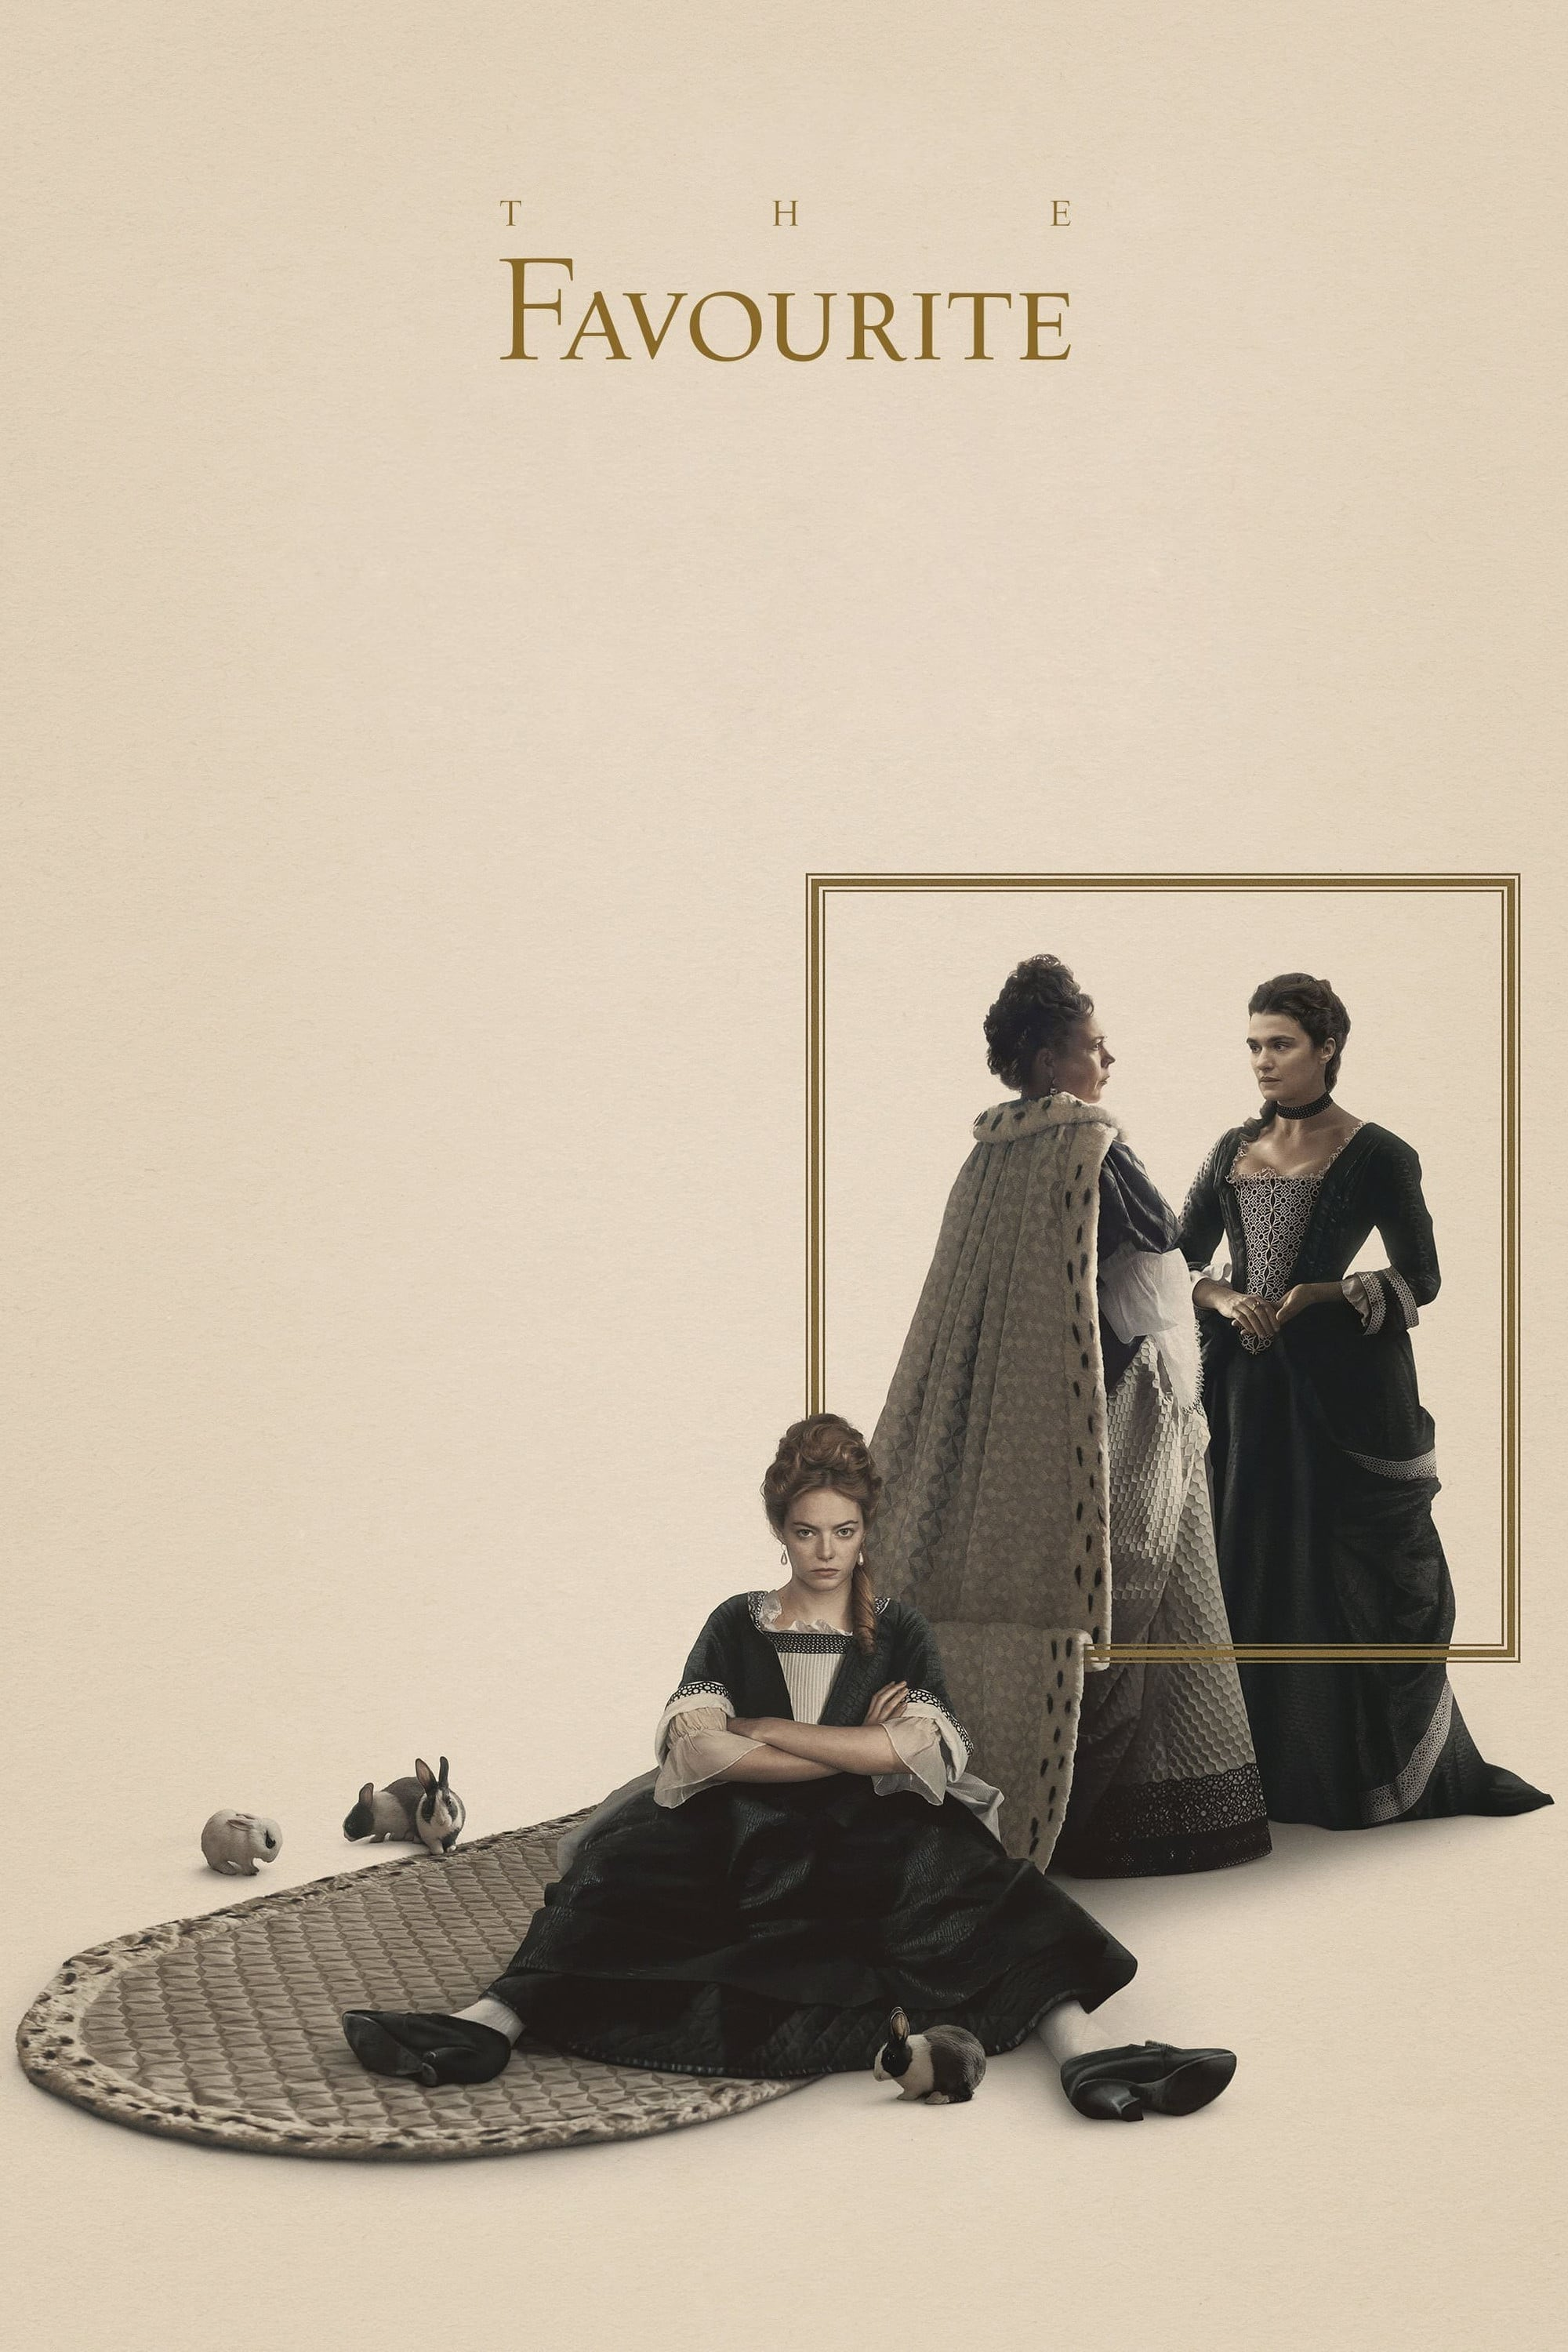 Poster and image movie Film The Favourite - The Favourite 2018